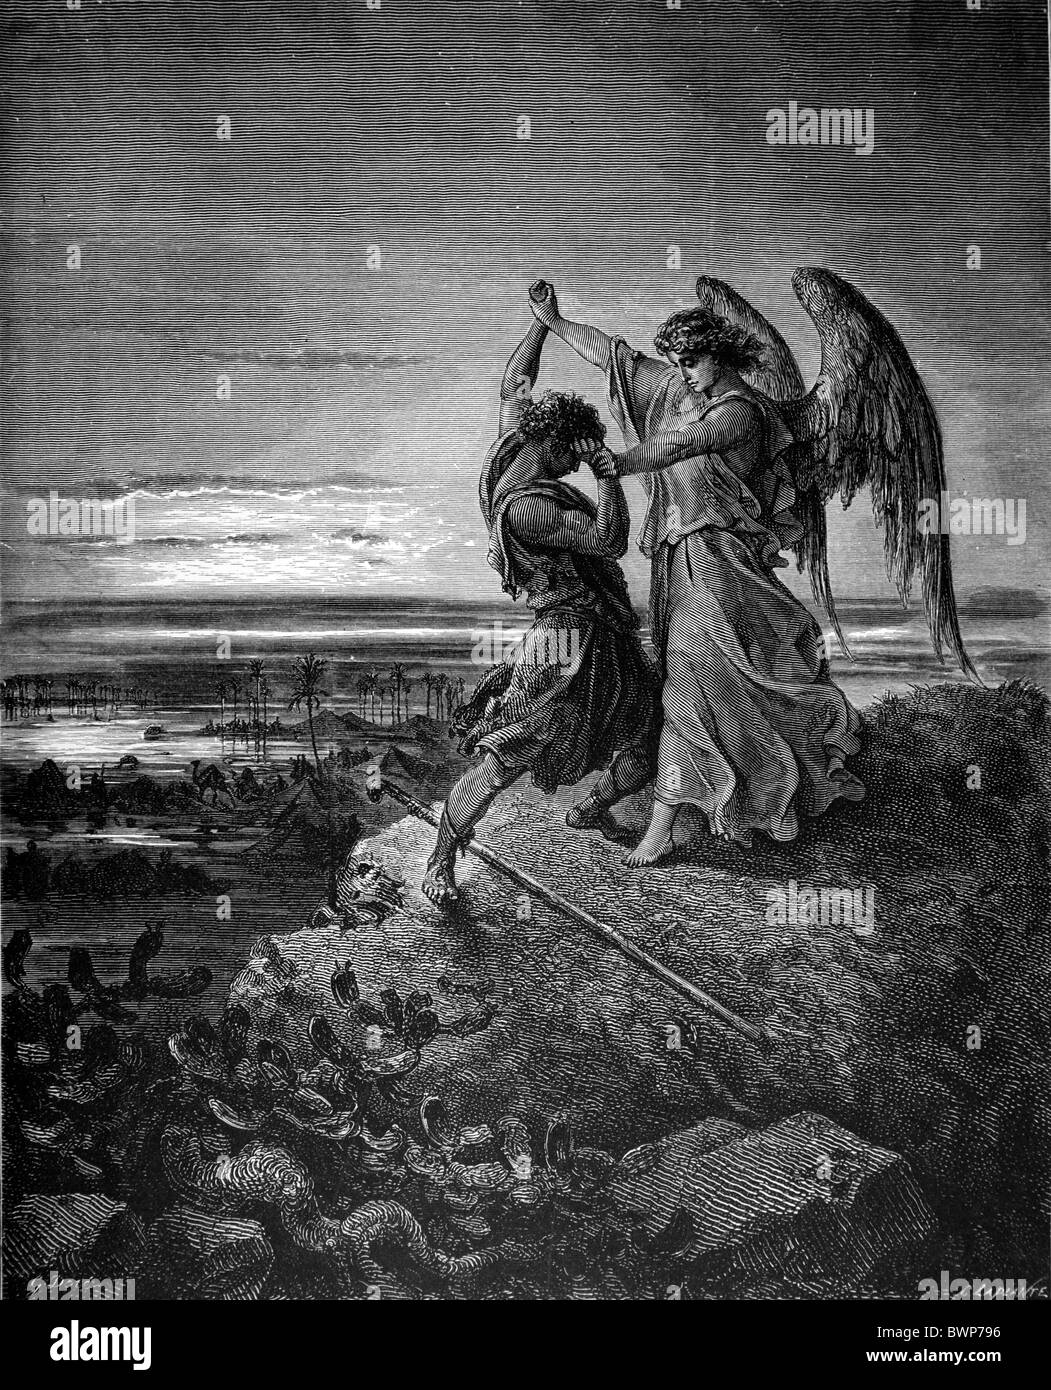 Gustave Doré; Jacob Wrestling with Satan; Black and White Engraving - Stock Image